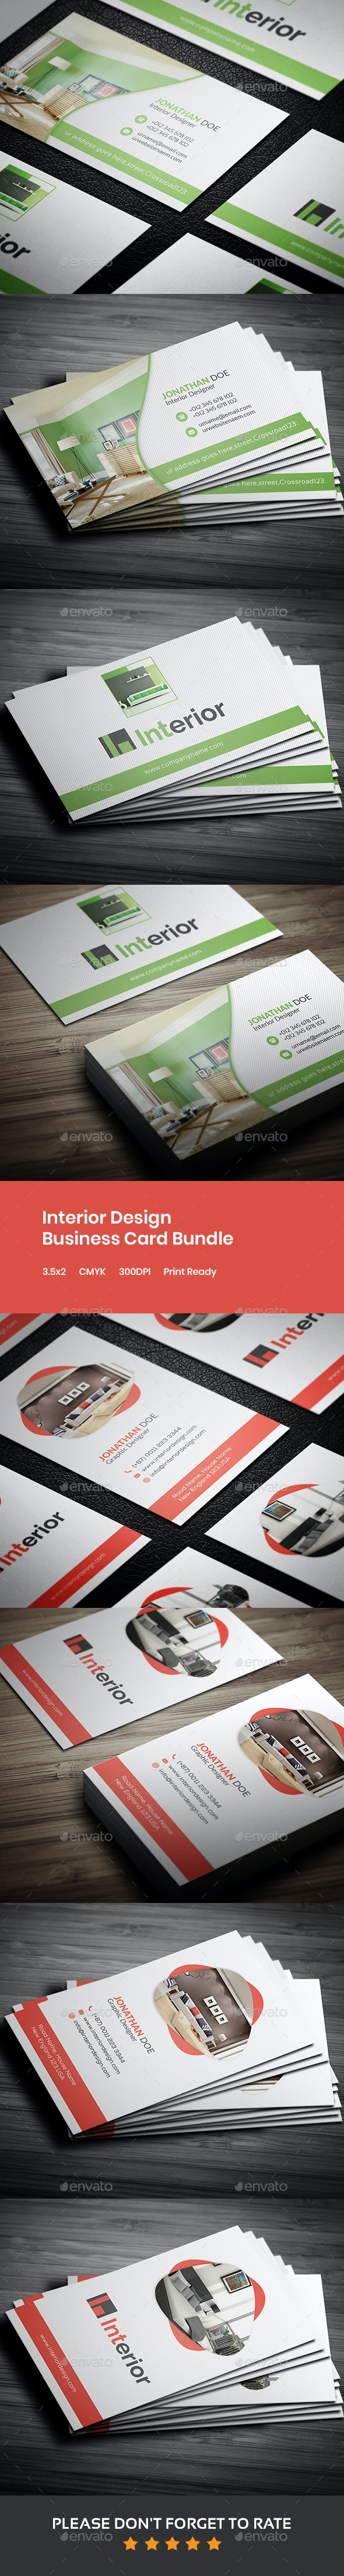 Interior Design Business Card Bundle - Industry Specific Business Cards